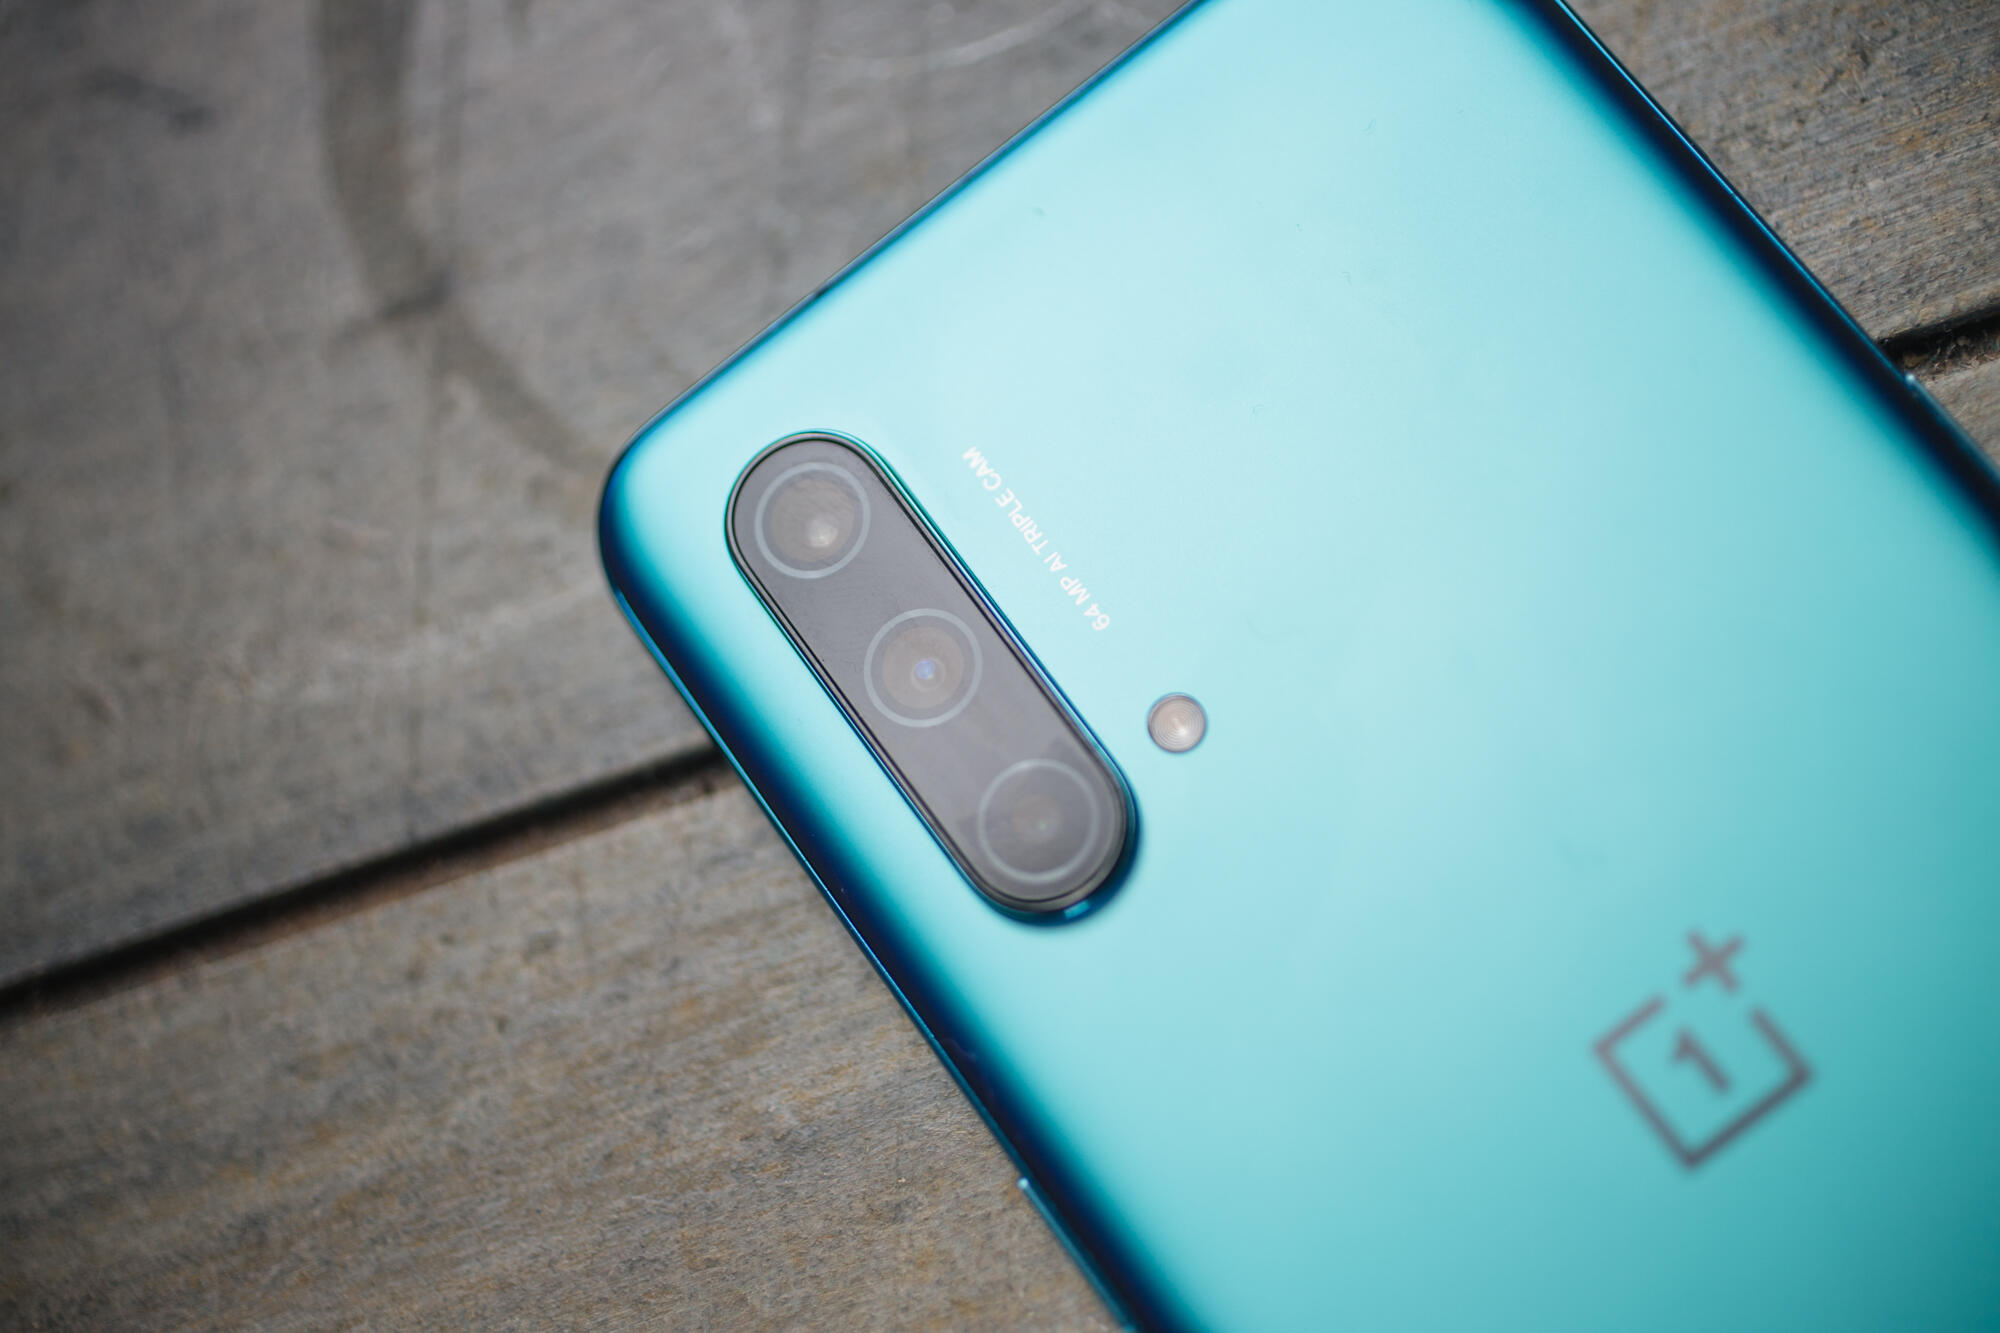 oneplus-nord-ce-review-product-3